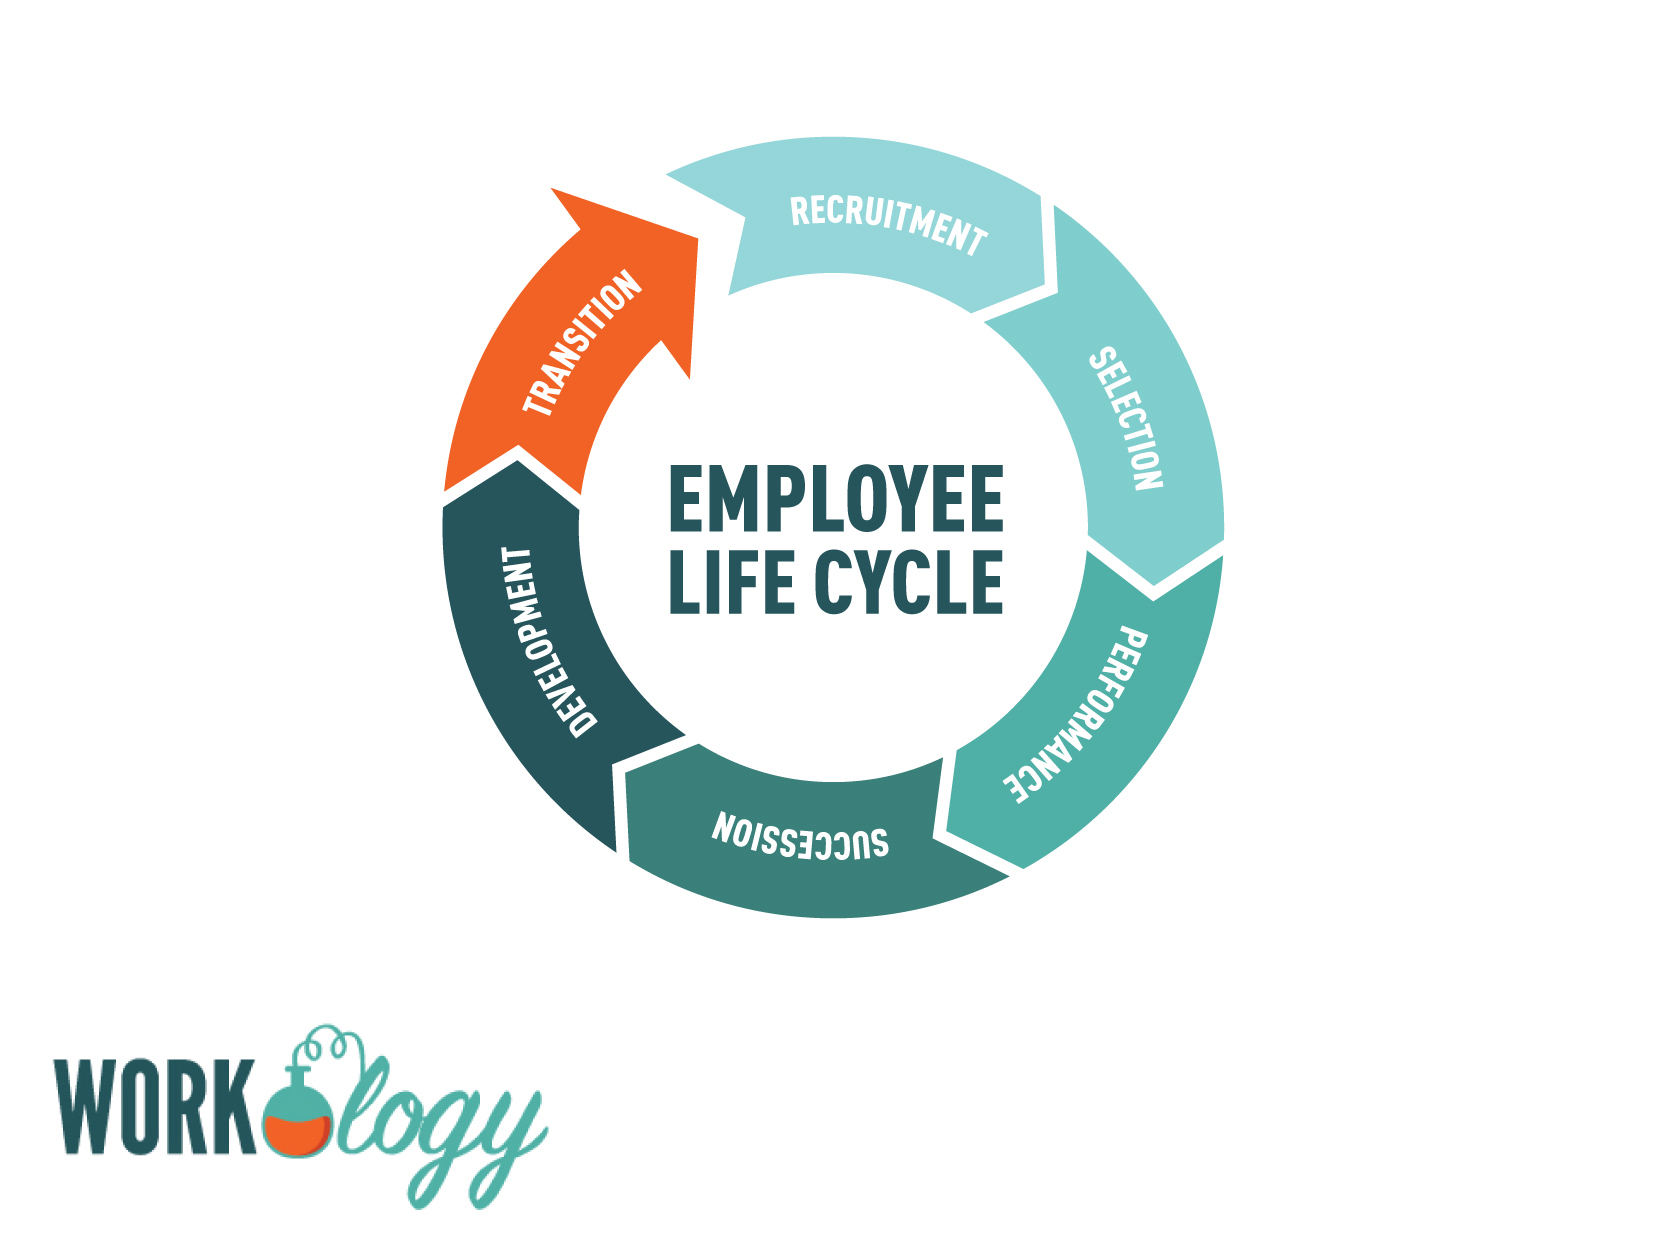 Employee Life Cycle Images And Employee Life Cycle